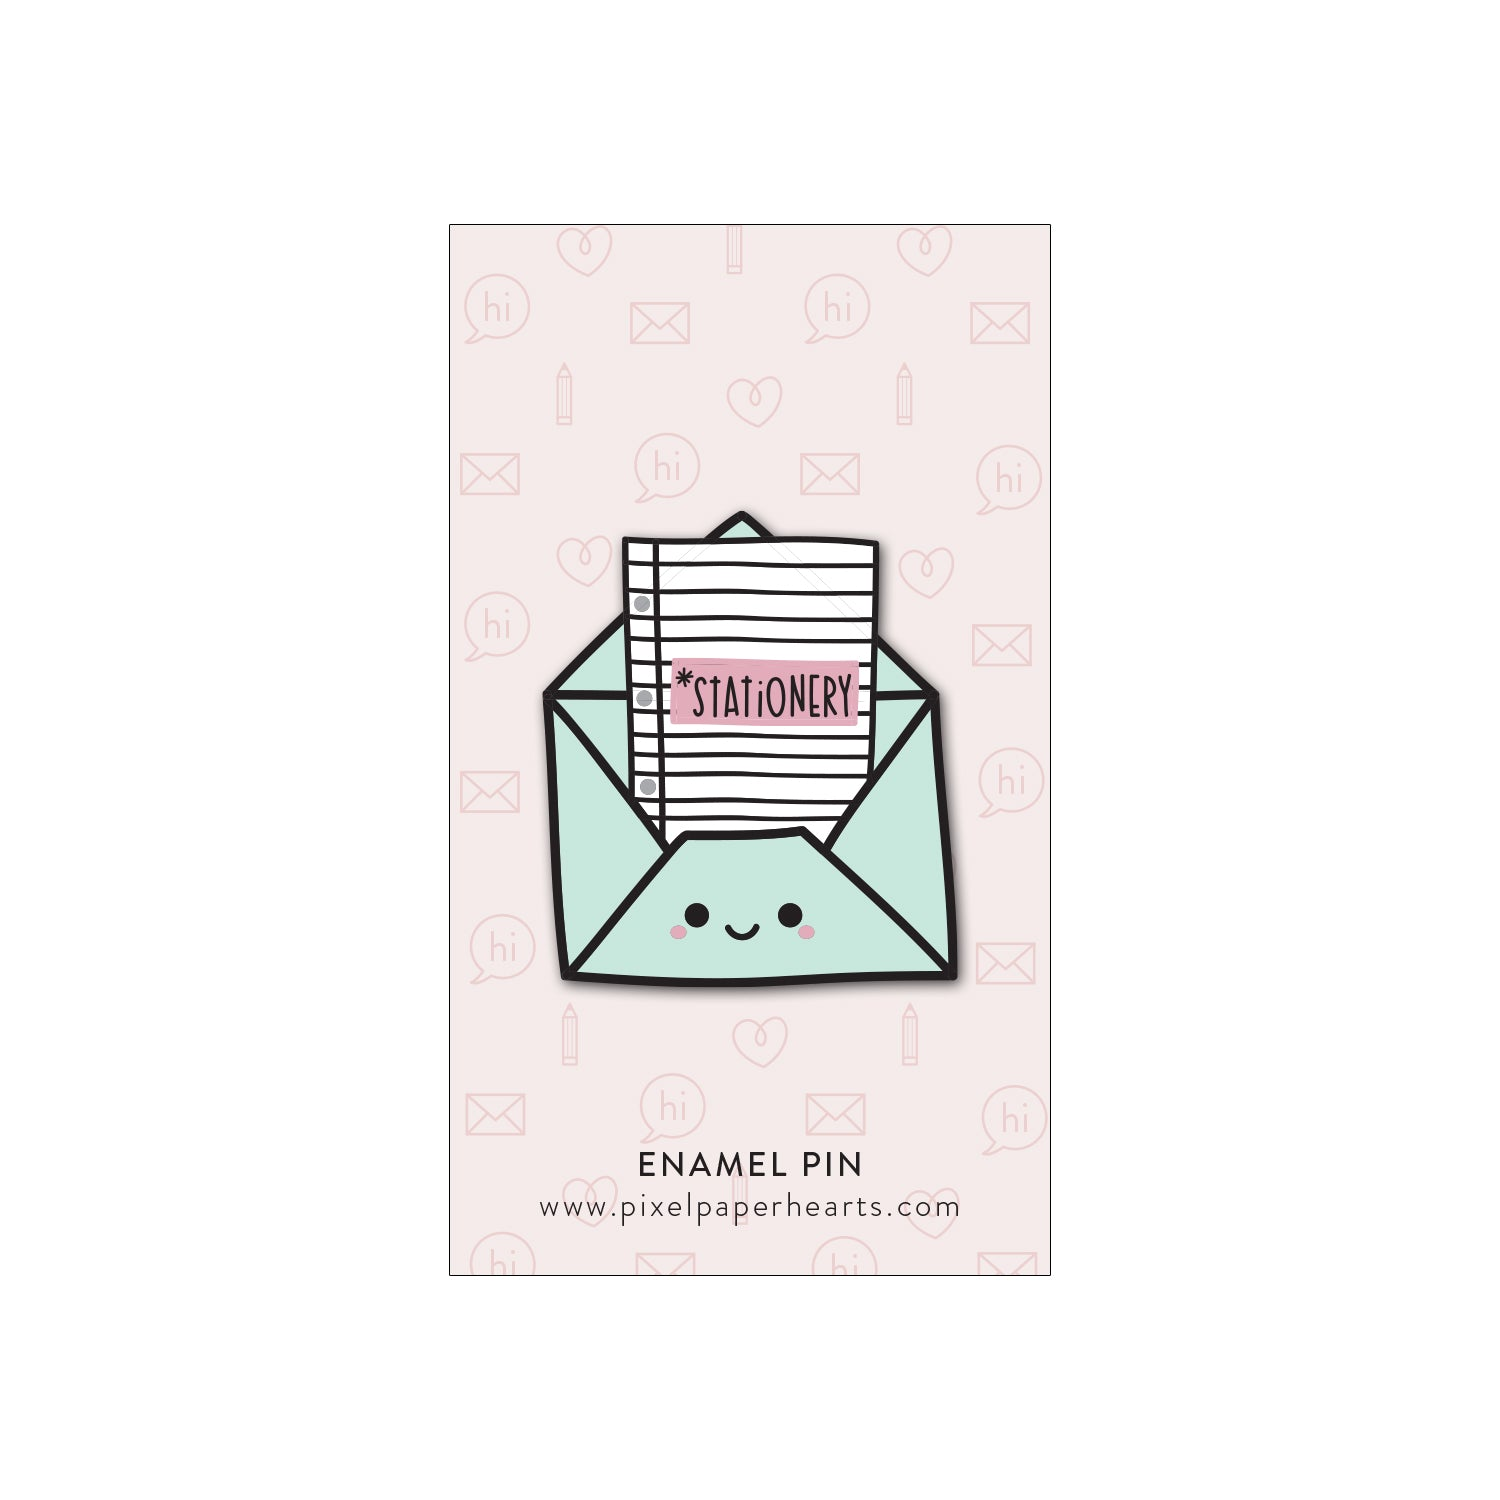 Stationary Enamel Pin - Femme Wares Niagara Local Small Business